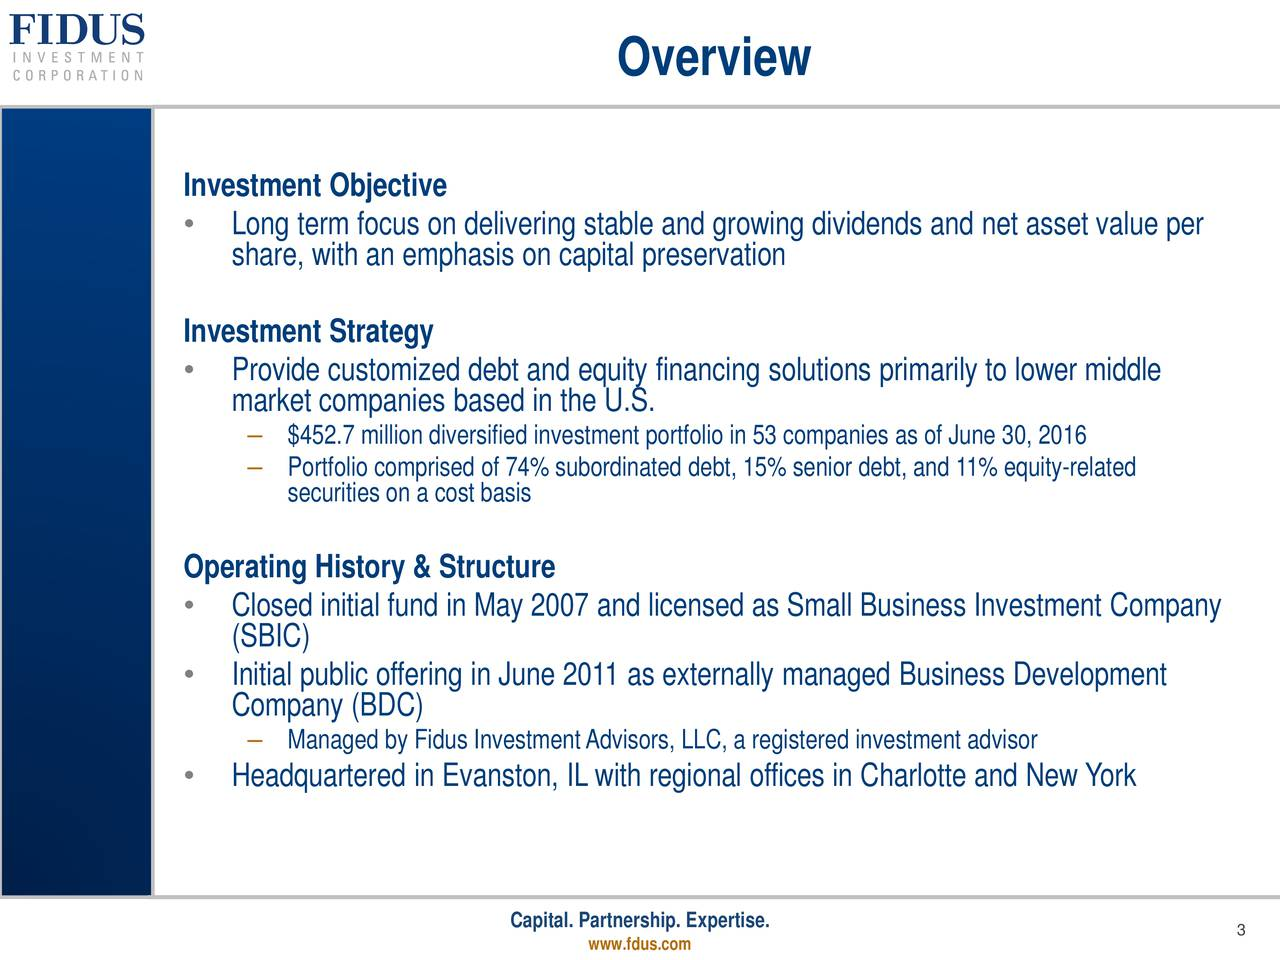 Investment Objective Long term focus on delivering stable and growing dividends and net asset value per share, with an emphasis on capital preservation Investment Strategy Provide customized debt and equity financing solutions primarily to lower middle market companies based in the U.S. $452.7 million diversified investment portfolio in 53 companies as of June 30, 2016 Portfolio comprised of 74% subordinated debt, 15% senior debt, and 11% equity-related securities on a cost basis Operating History & Structure Closed initial fund in May 2007 and licensed as Small Business Investment Company (SBIC) Initial public offering in June 2011 as externally managed Business Development Company (BDC) Managed by Fidus InvestmentAdvisors, LLC, a registered investment advisor Headquartered in Evanston, IL with regional offices in Charlotte and New York Capital. Partnership. Expertise. 3